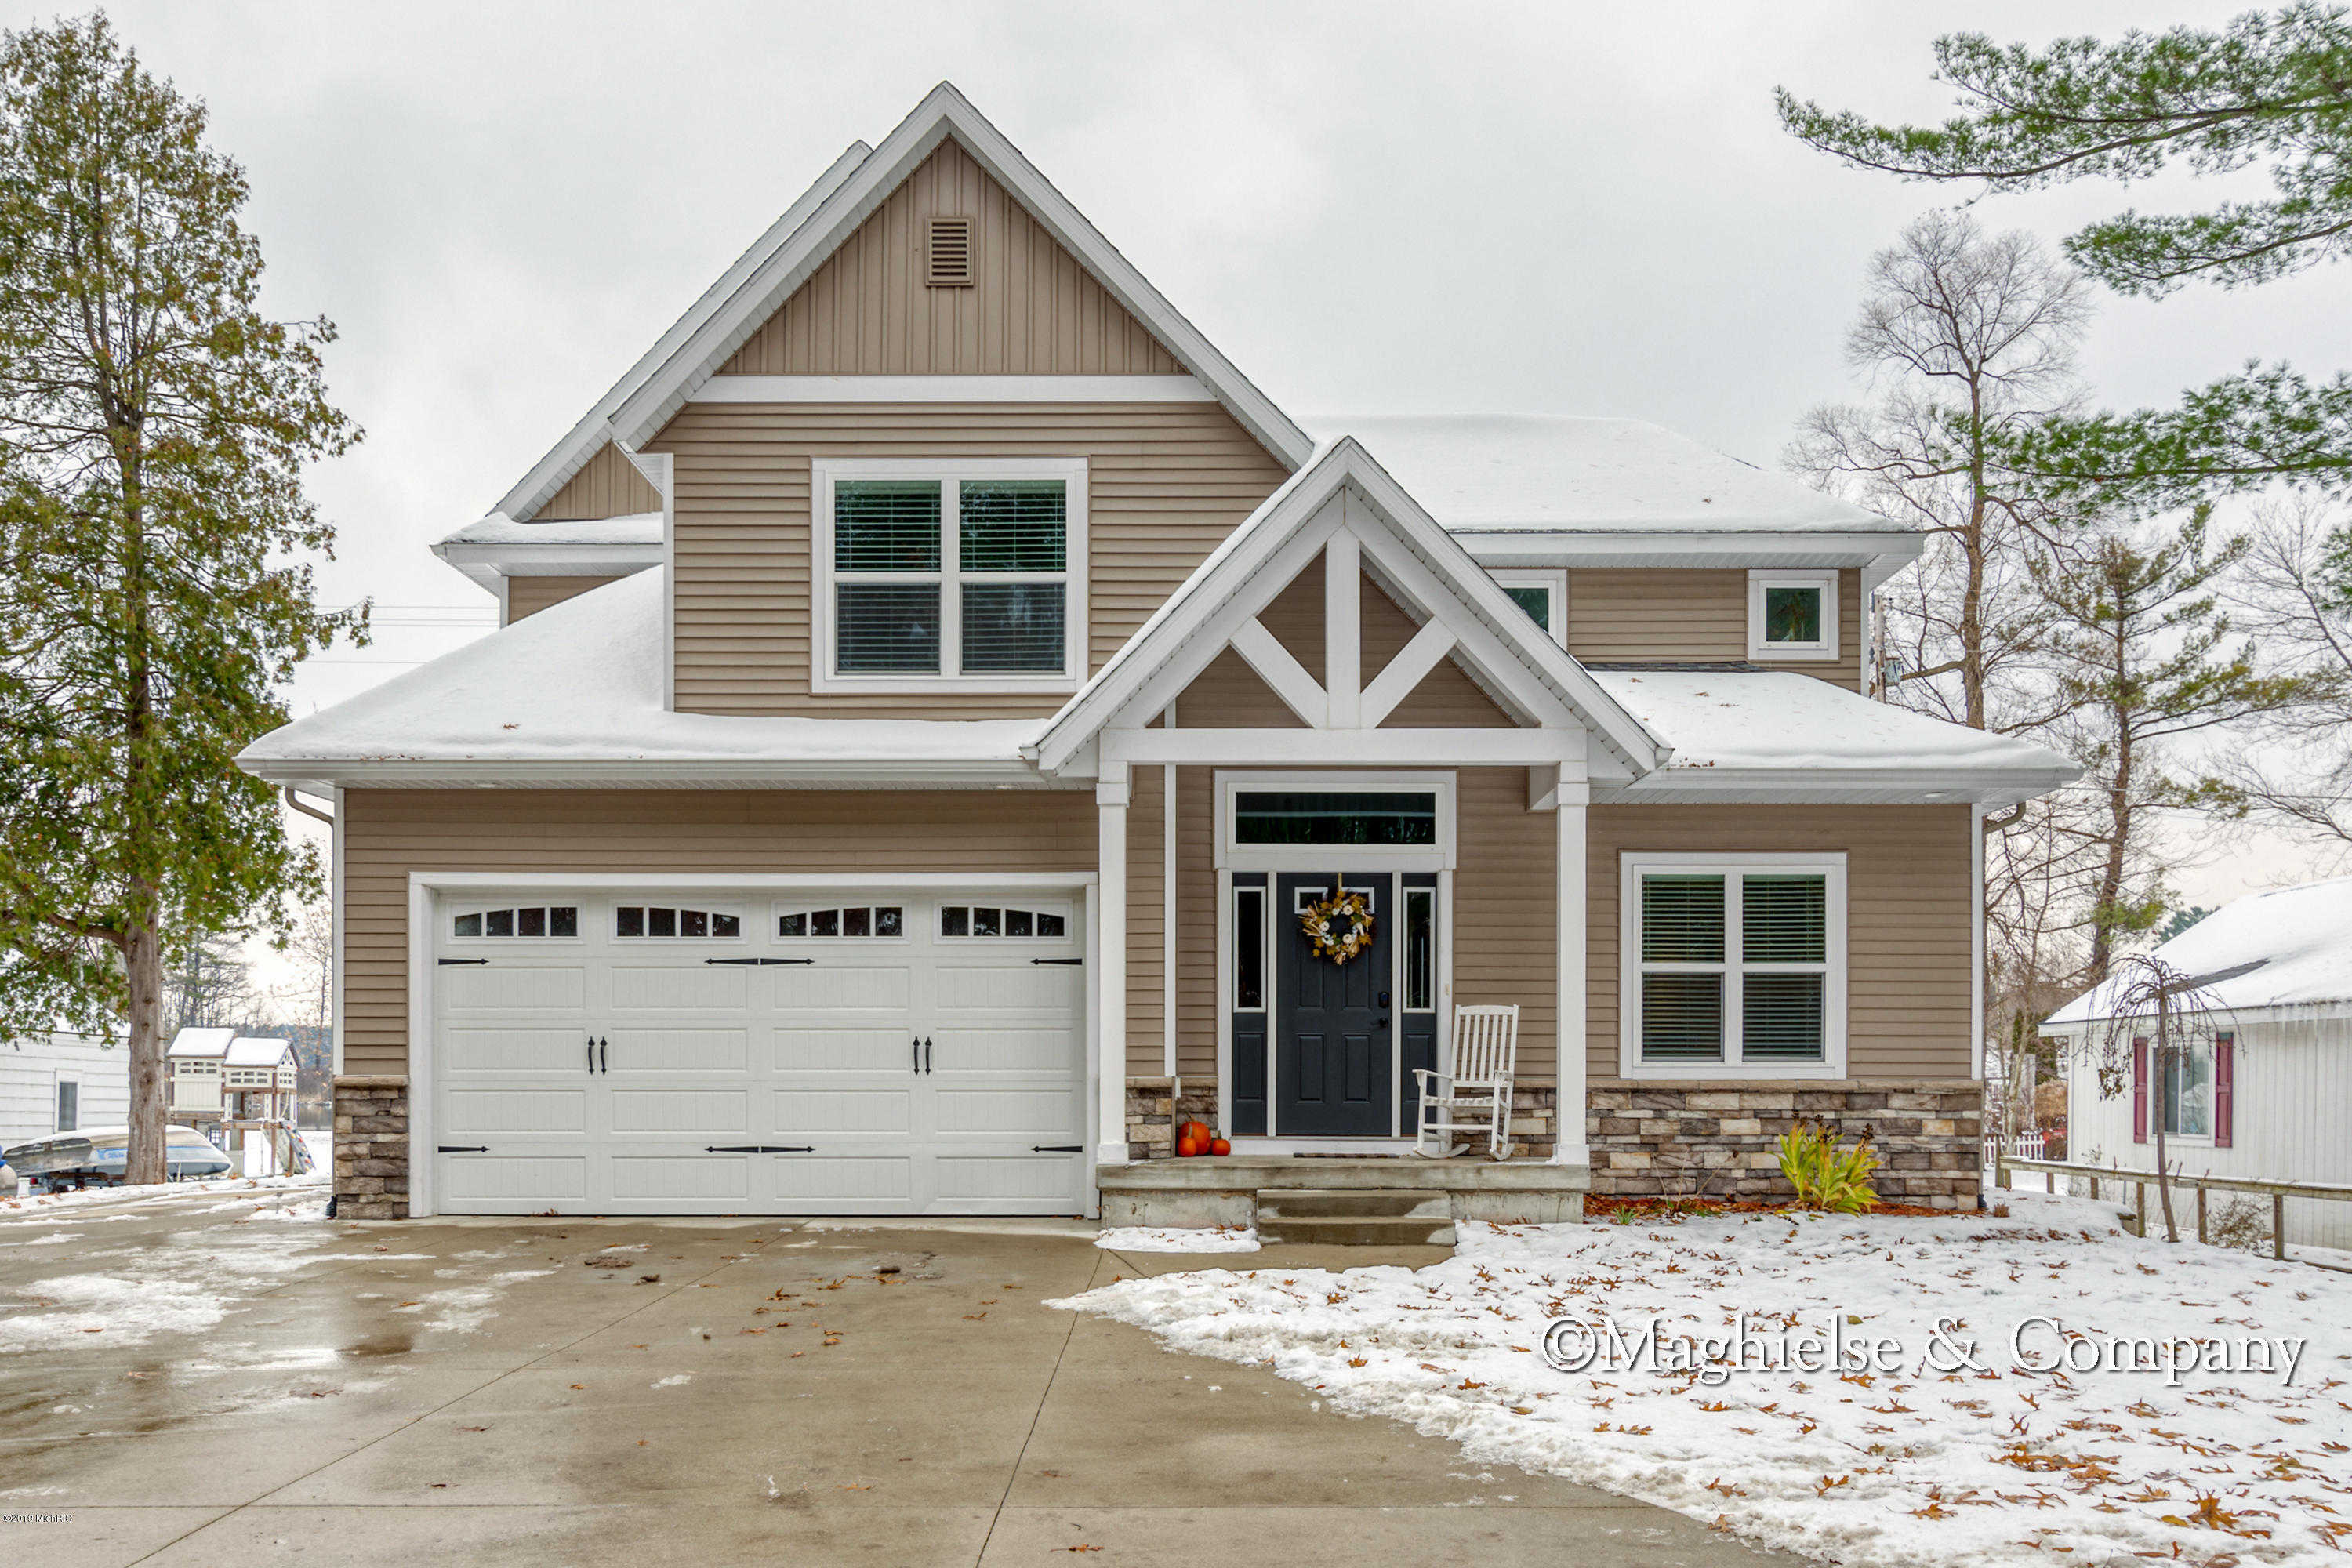 11576 W M 179 HWY Highway, Middleville, MI 49333 has an Open House on  Sunday, January 19, 2020 1:00 PM to 2:30 PM